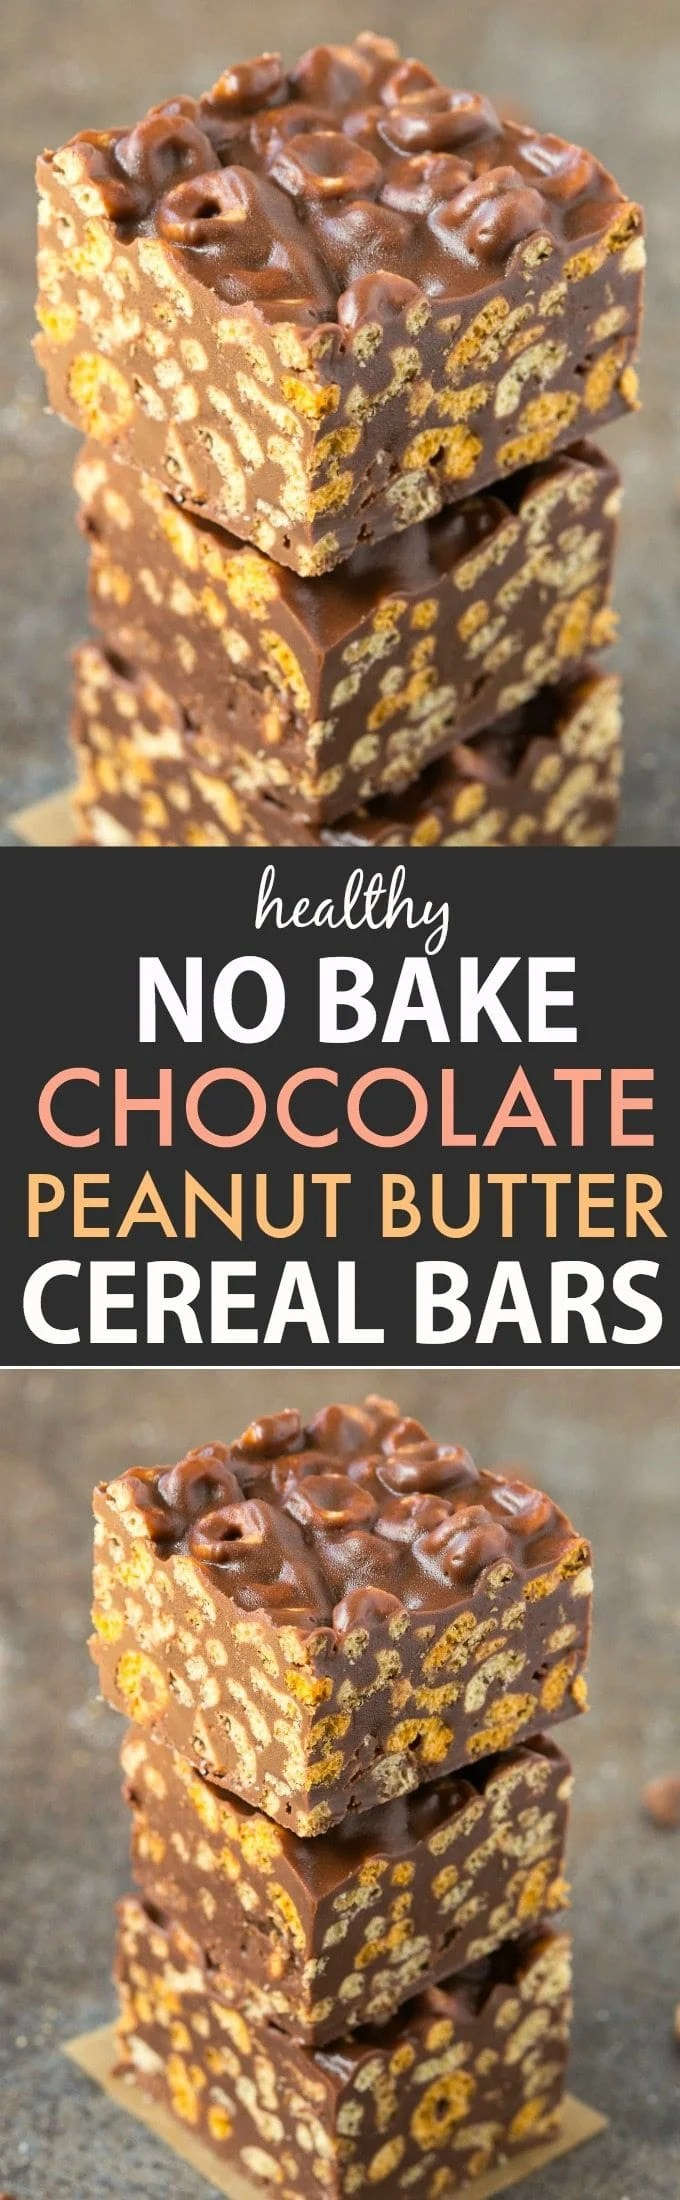 Healthy No Bake Chocolate Peanut Butter Cereal Bars (Vegan, Gluten ...